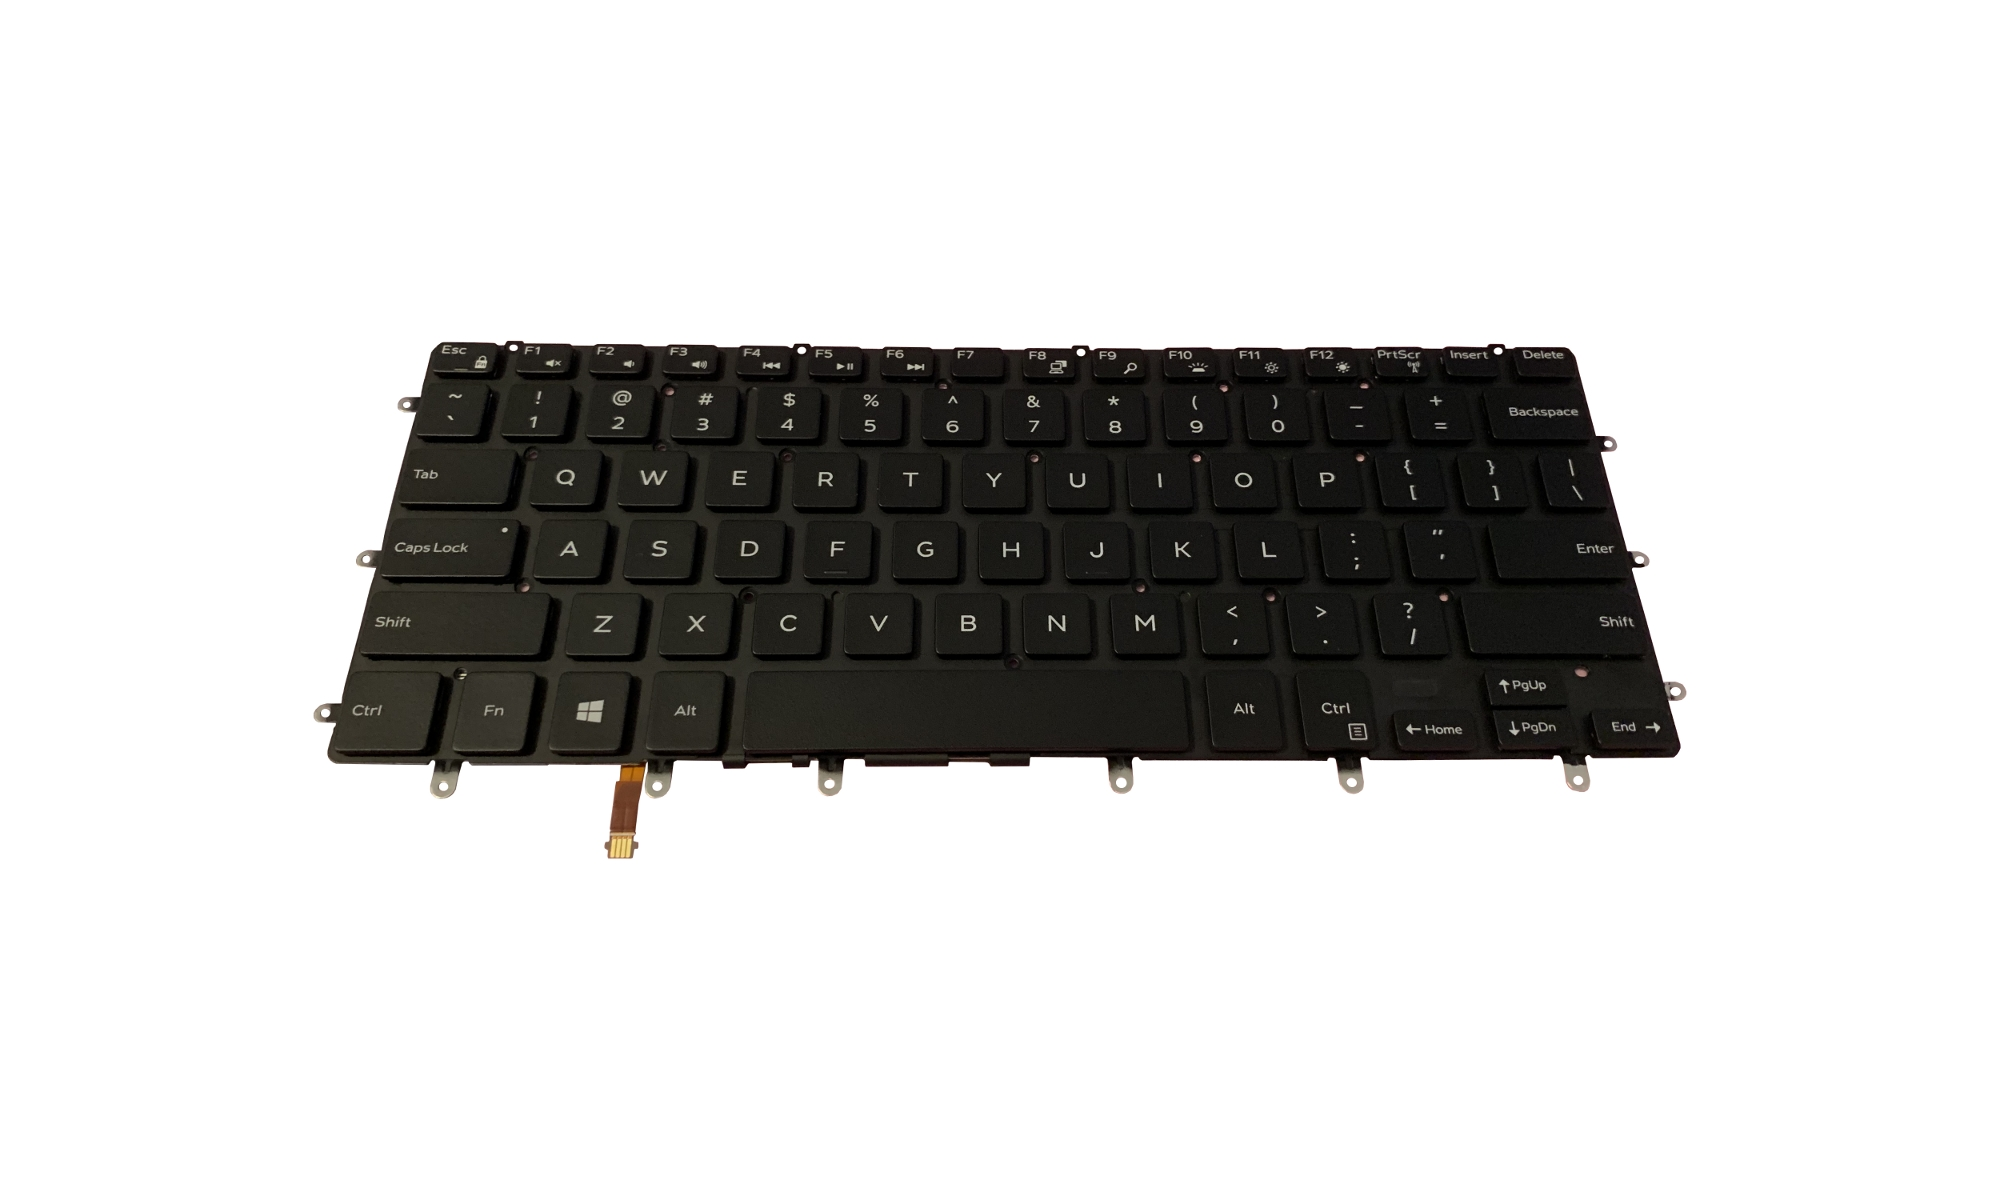 Tastatura originala Dell Precision 5510 iluminata, layout US